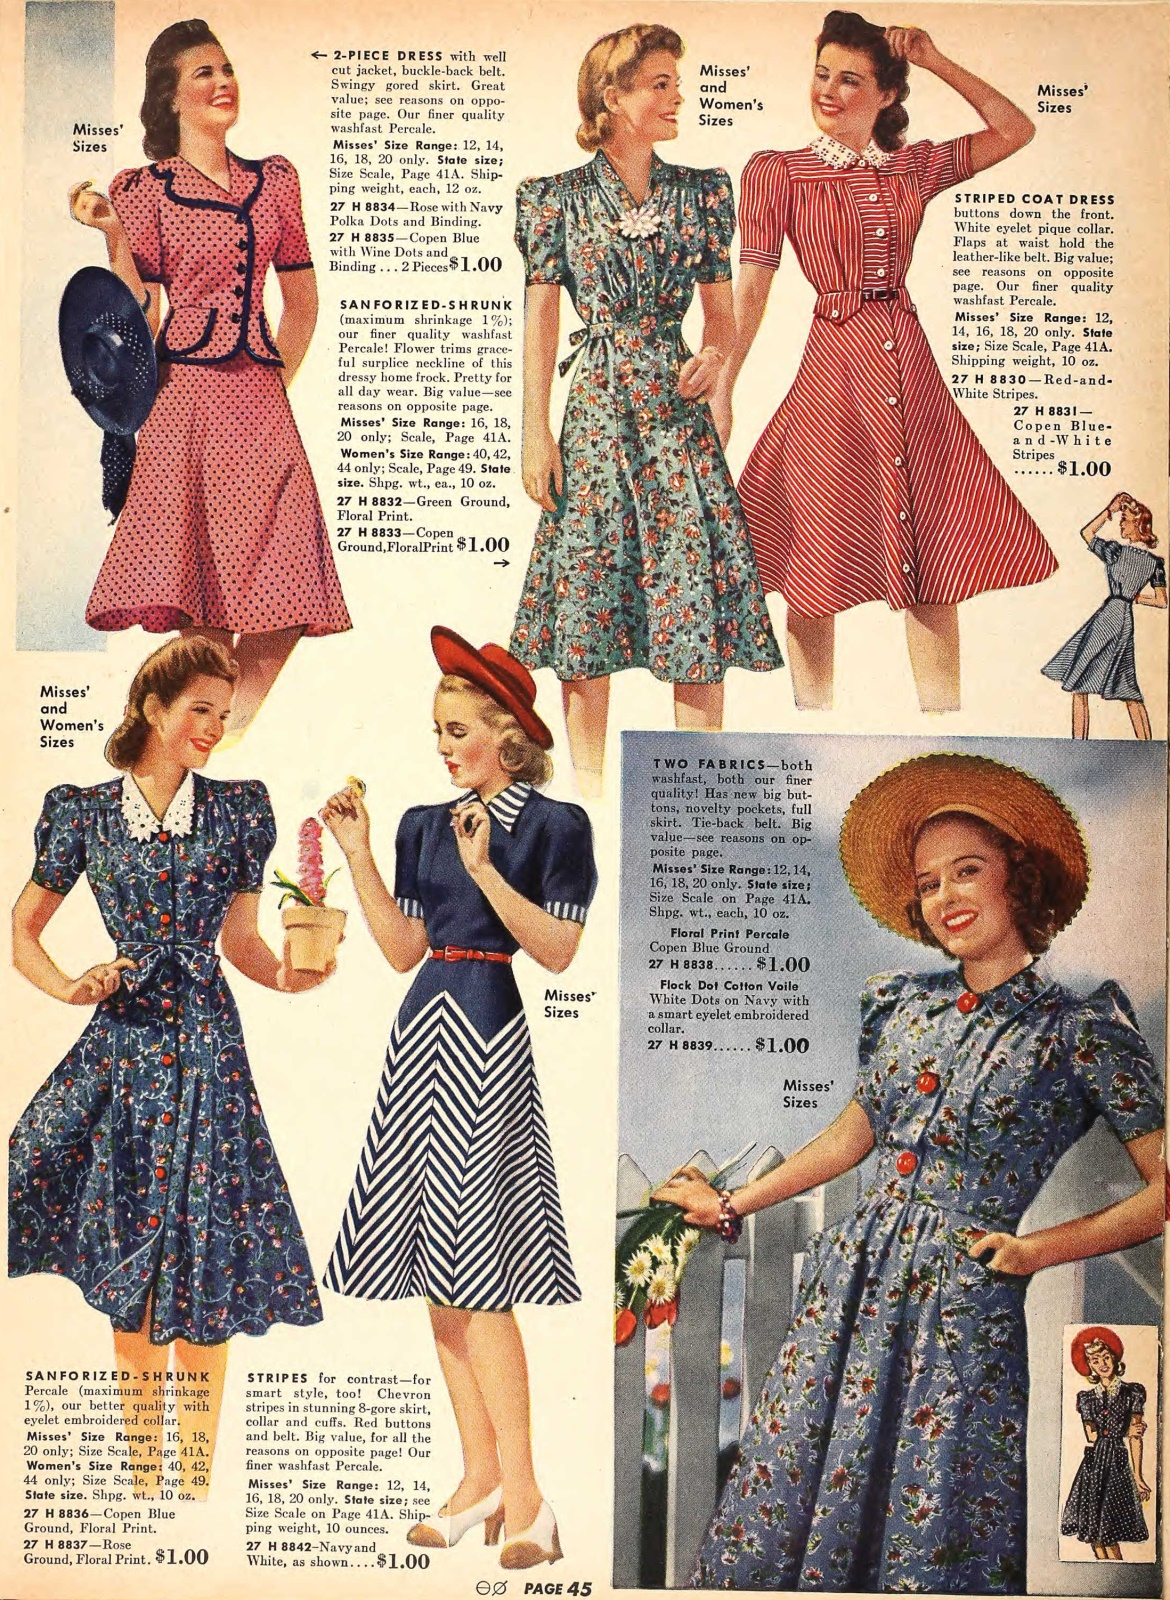 1940s Fashion And Style Trends In 40 Stunning Pictures: Lana Lobell Fashions Of The 50's, 60's And 70's On